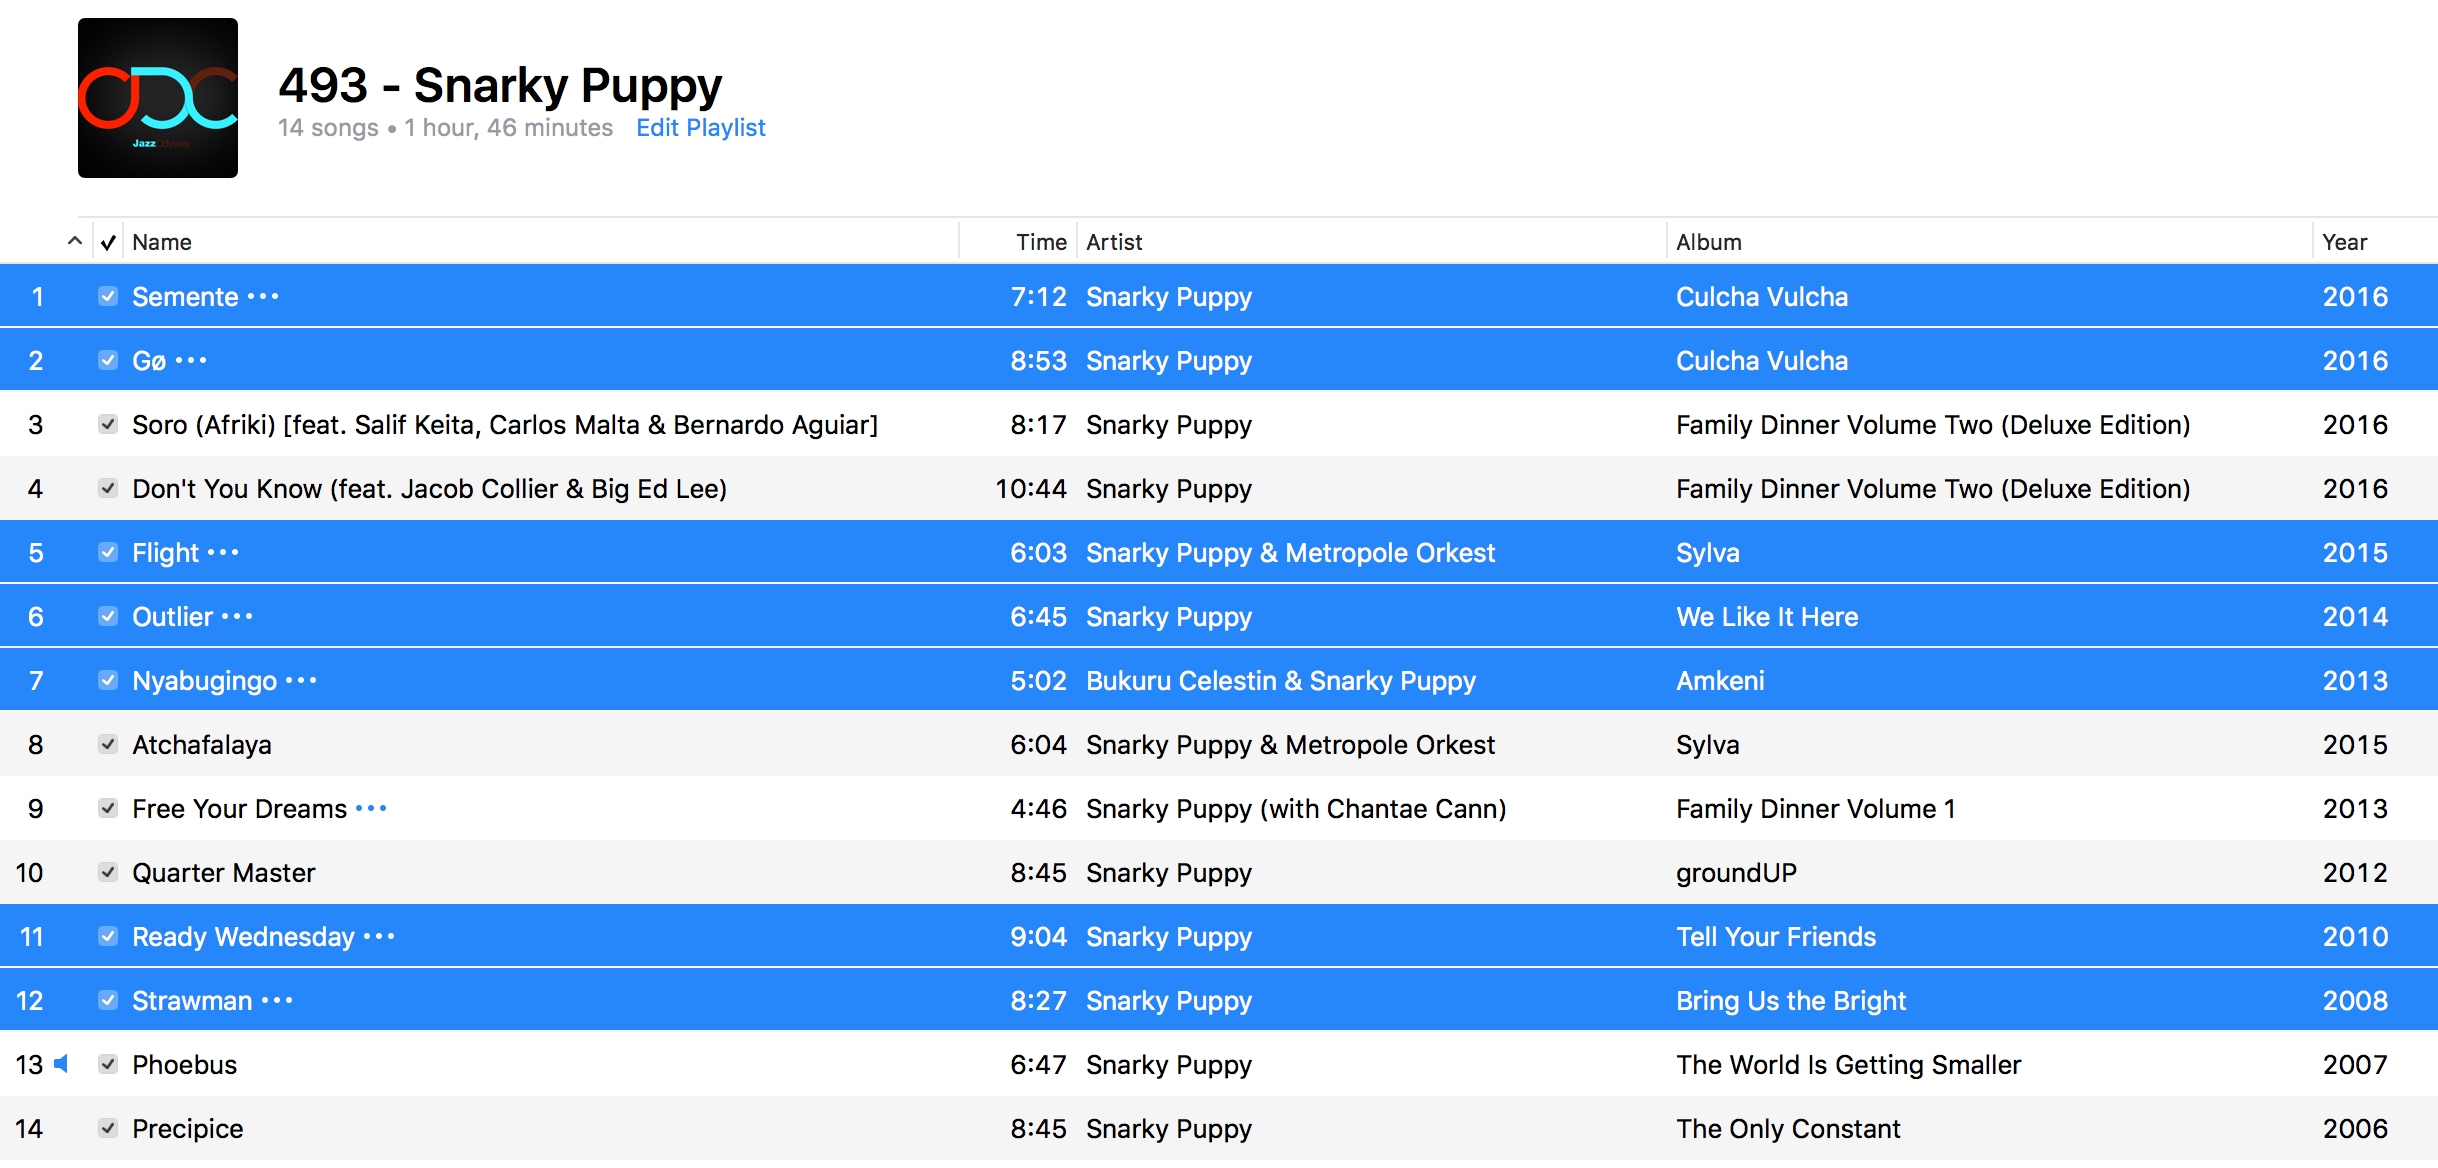 Jazz ODC #493 - Snarky Puppy - Playlist